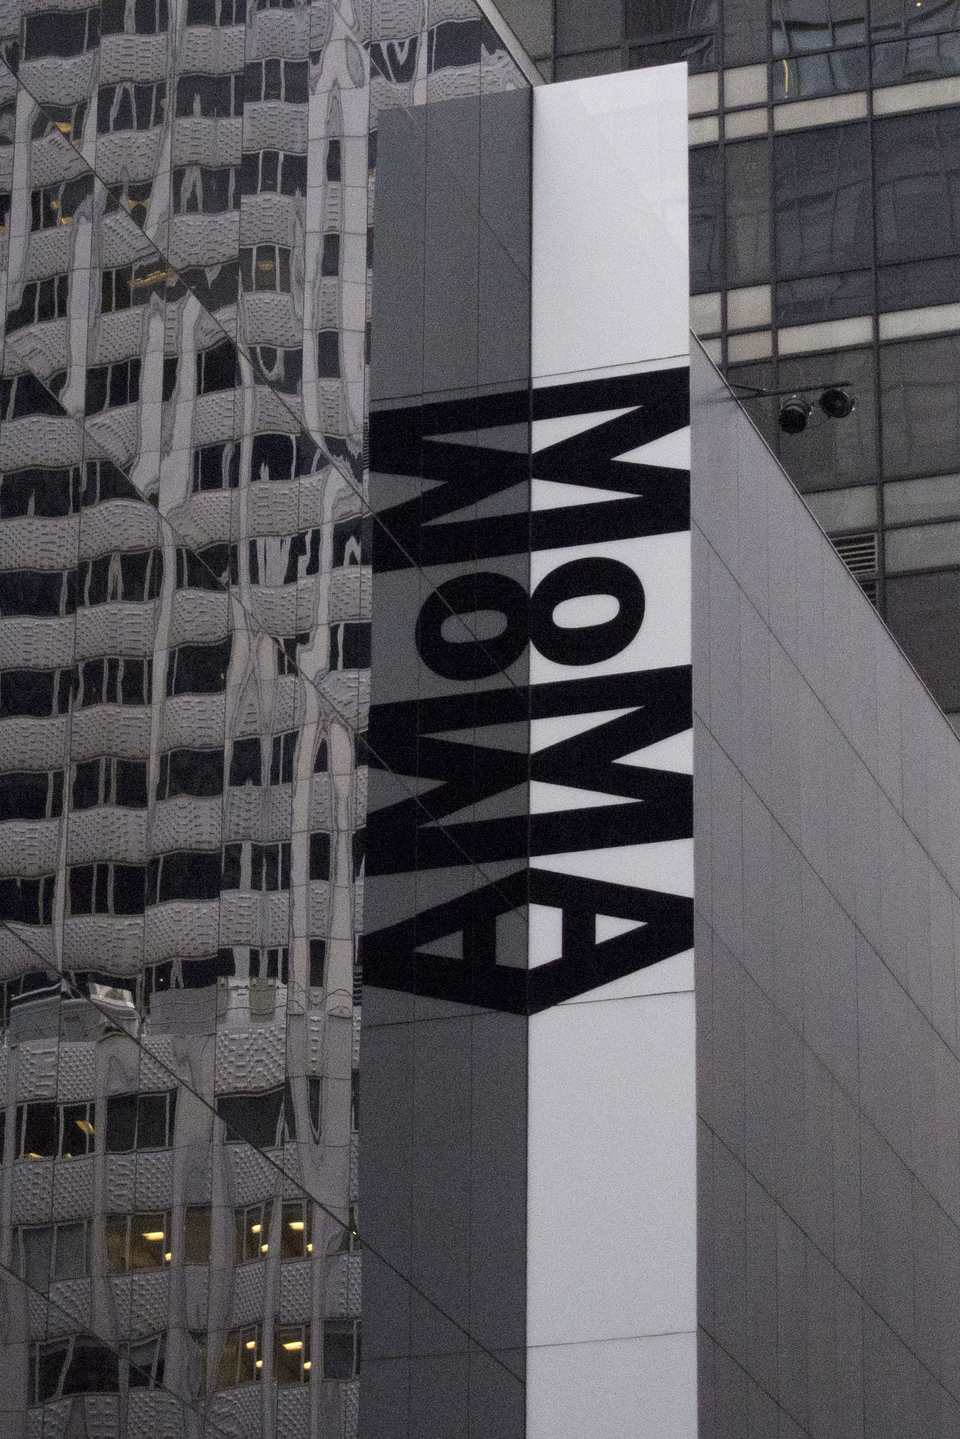 MoMA hours, location, gallery info & more